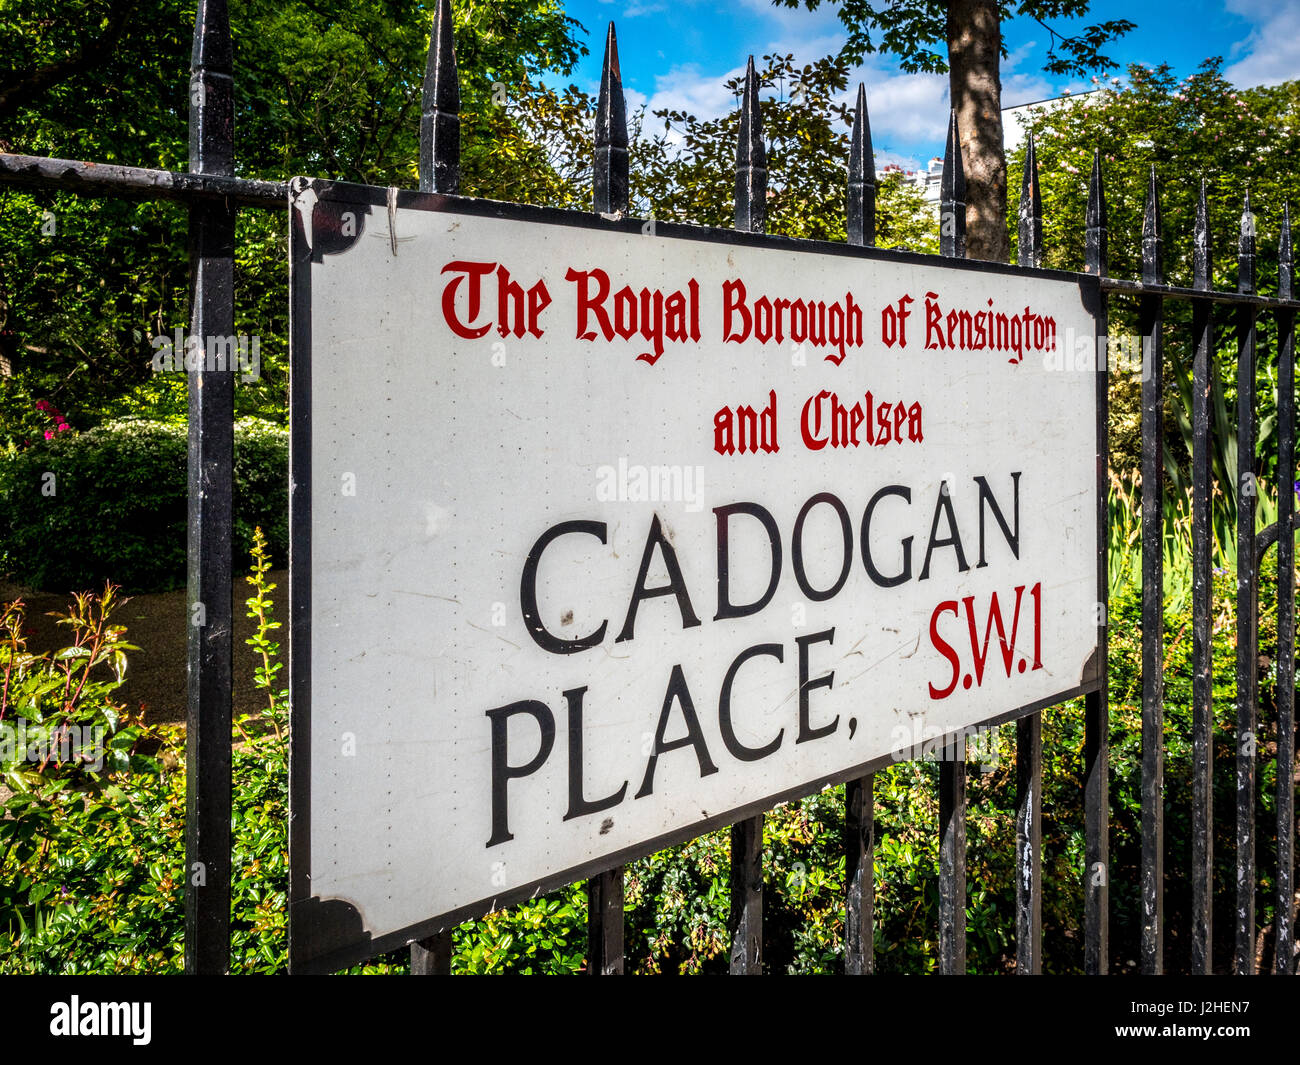 Cadogan Place street sign on railings of private residents only garden, London, UK. - Stock Image